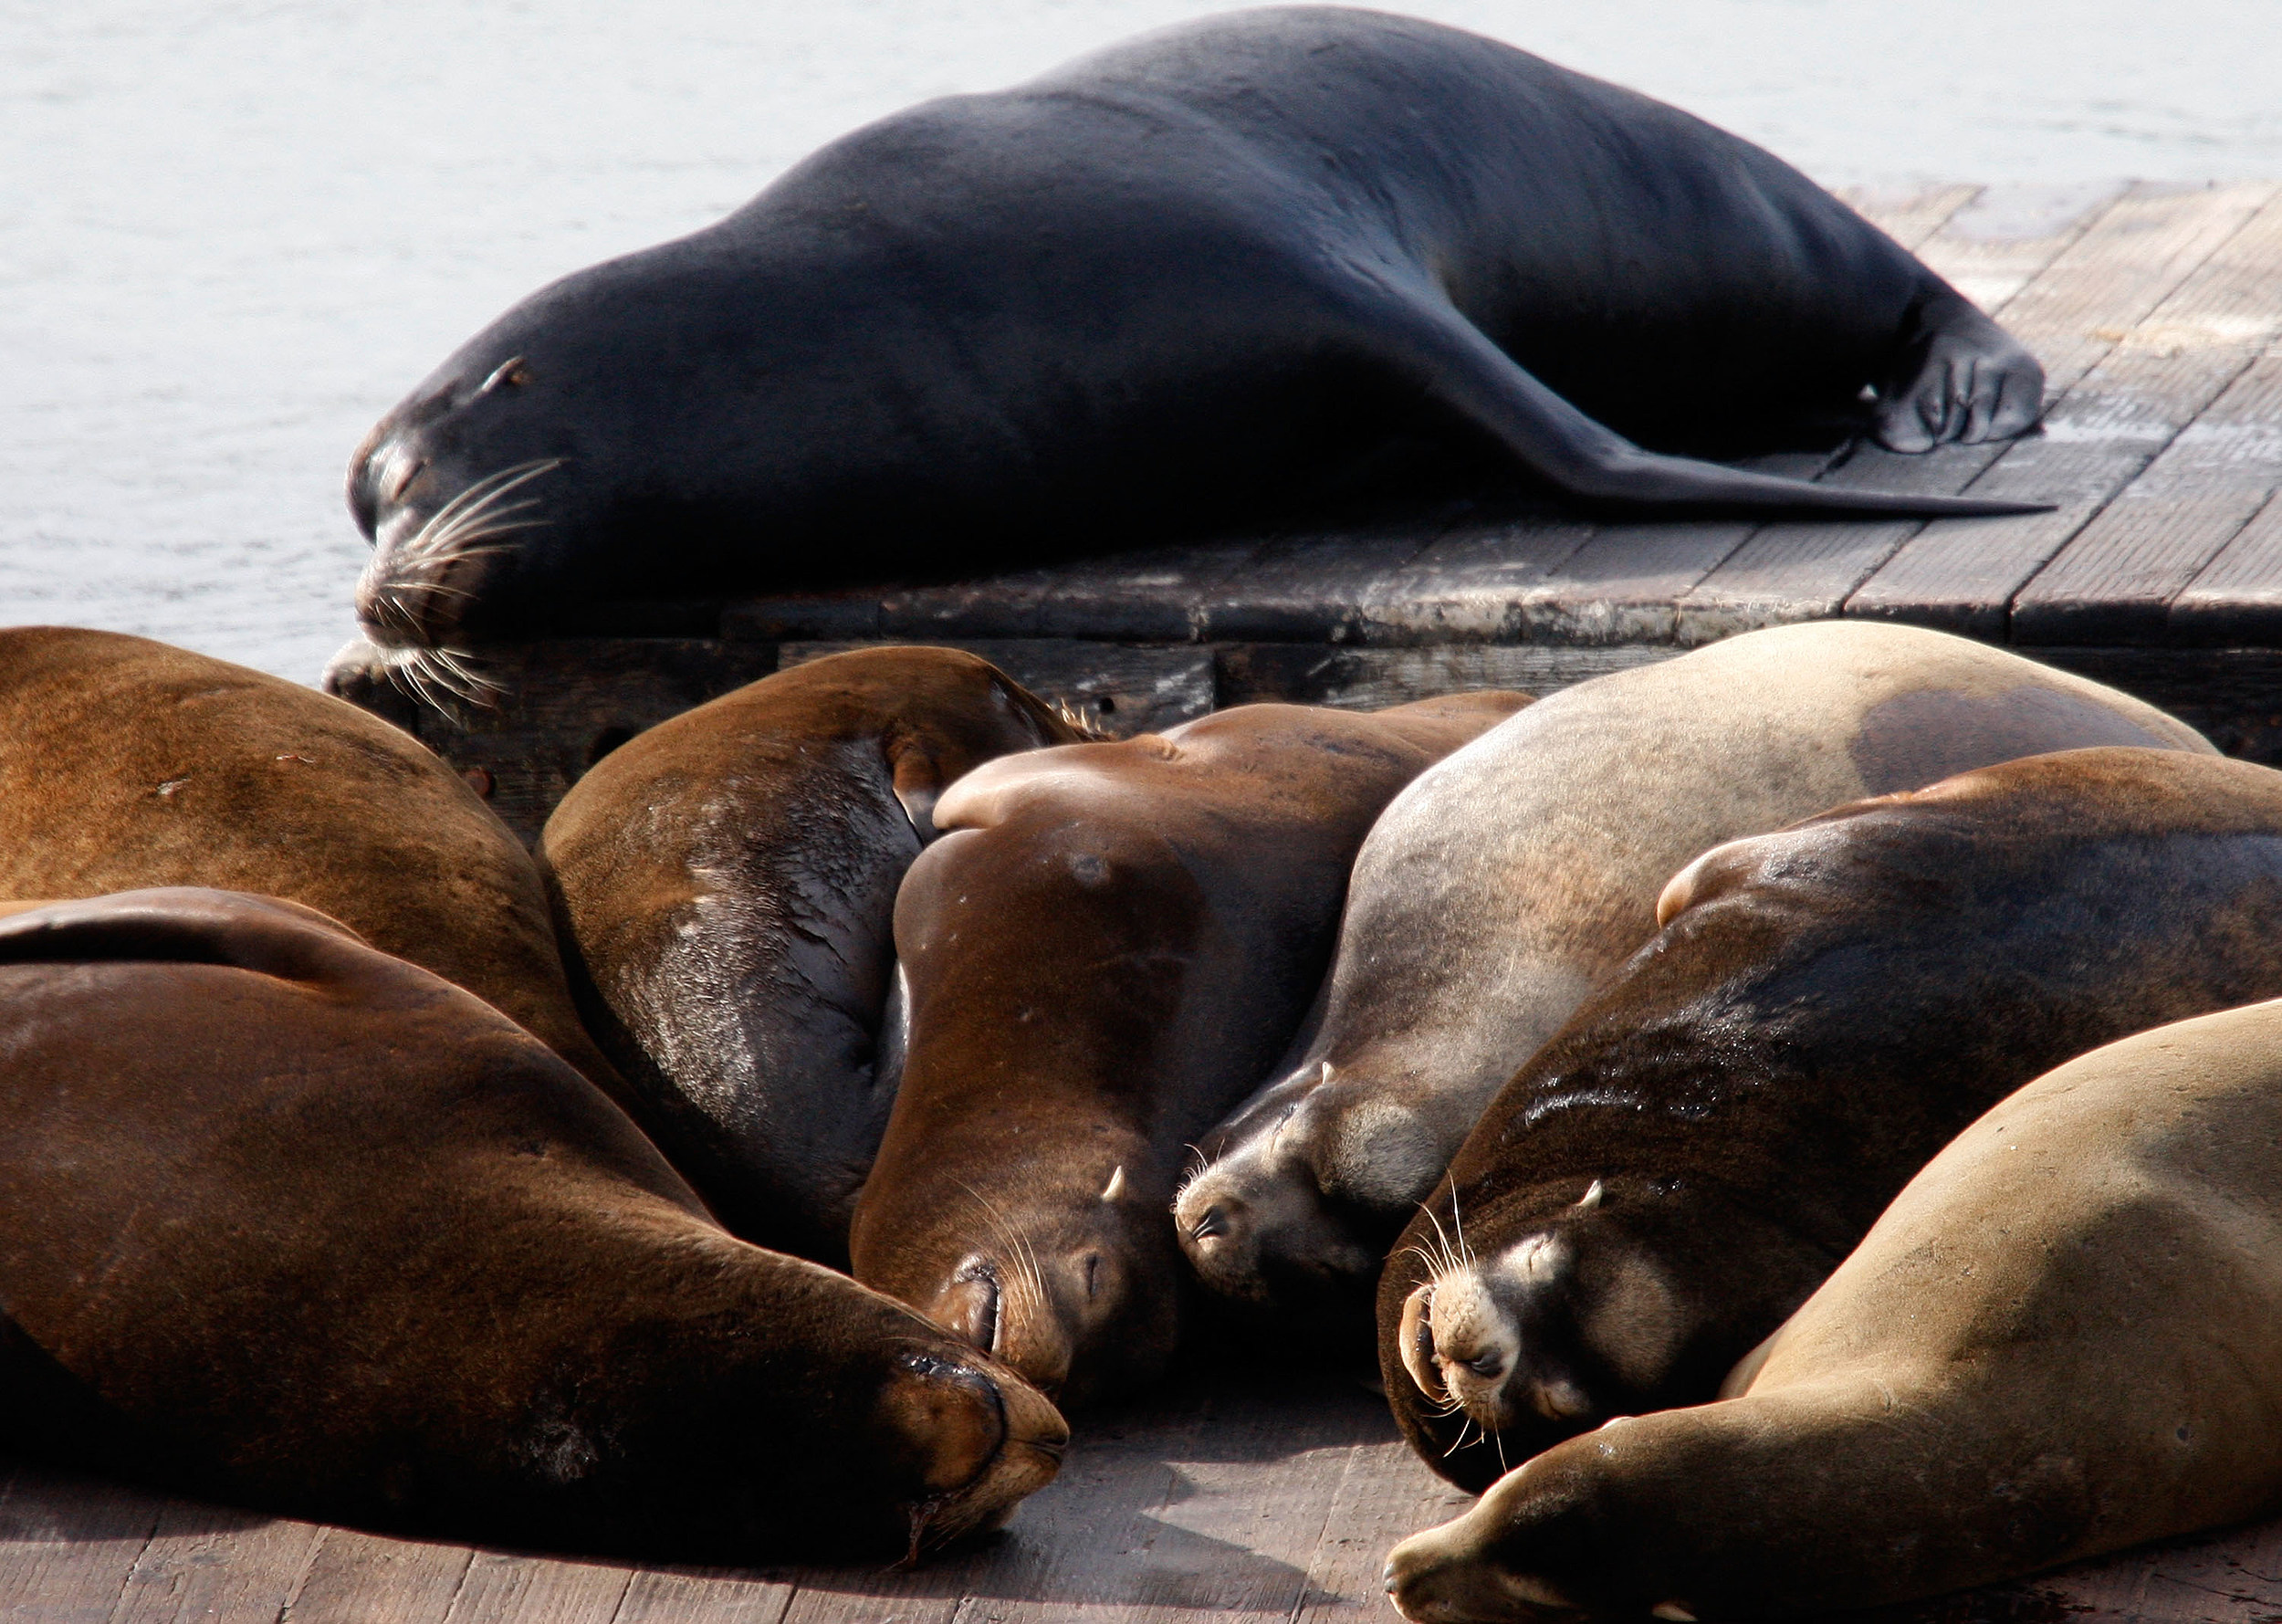 San Francisco Sea Lions Become A Favorite Local Attraction